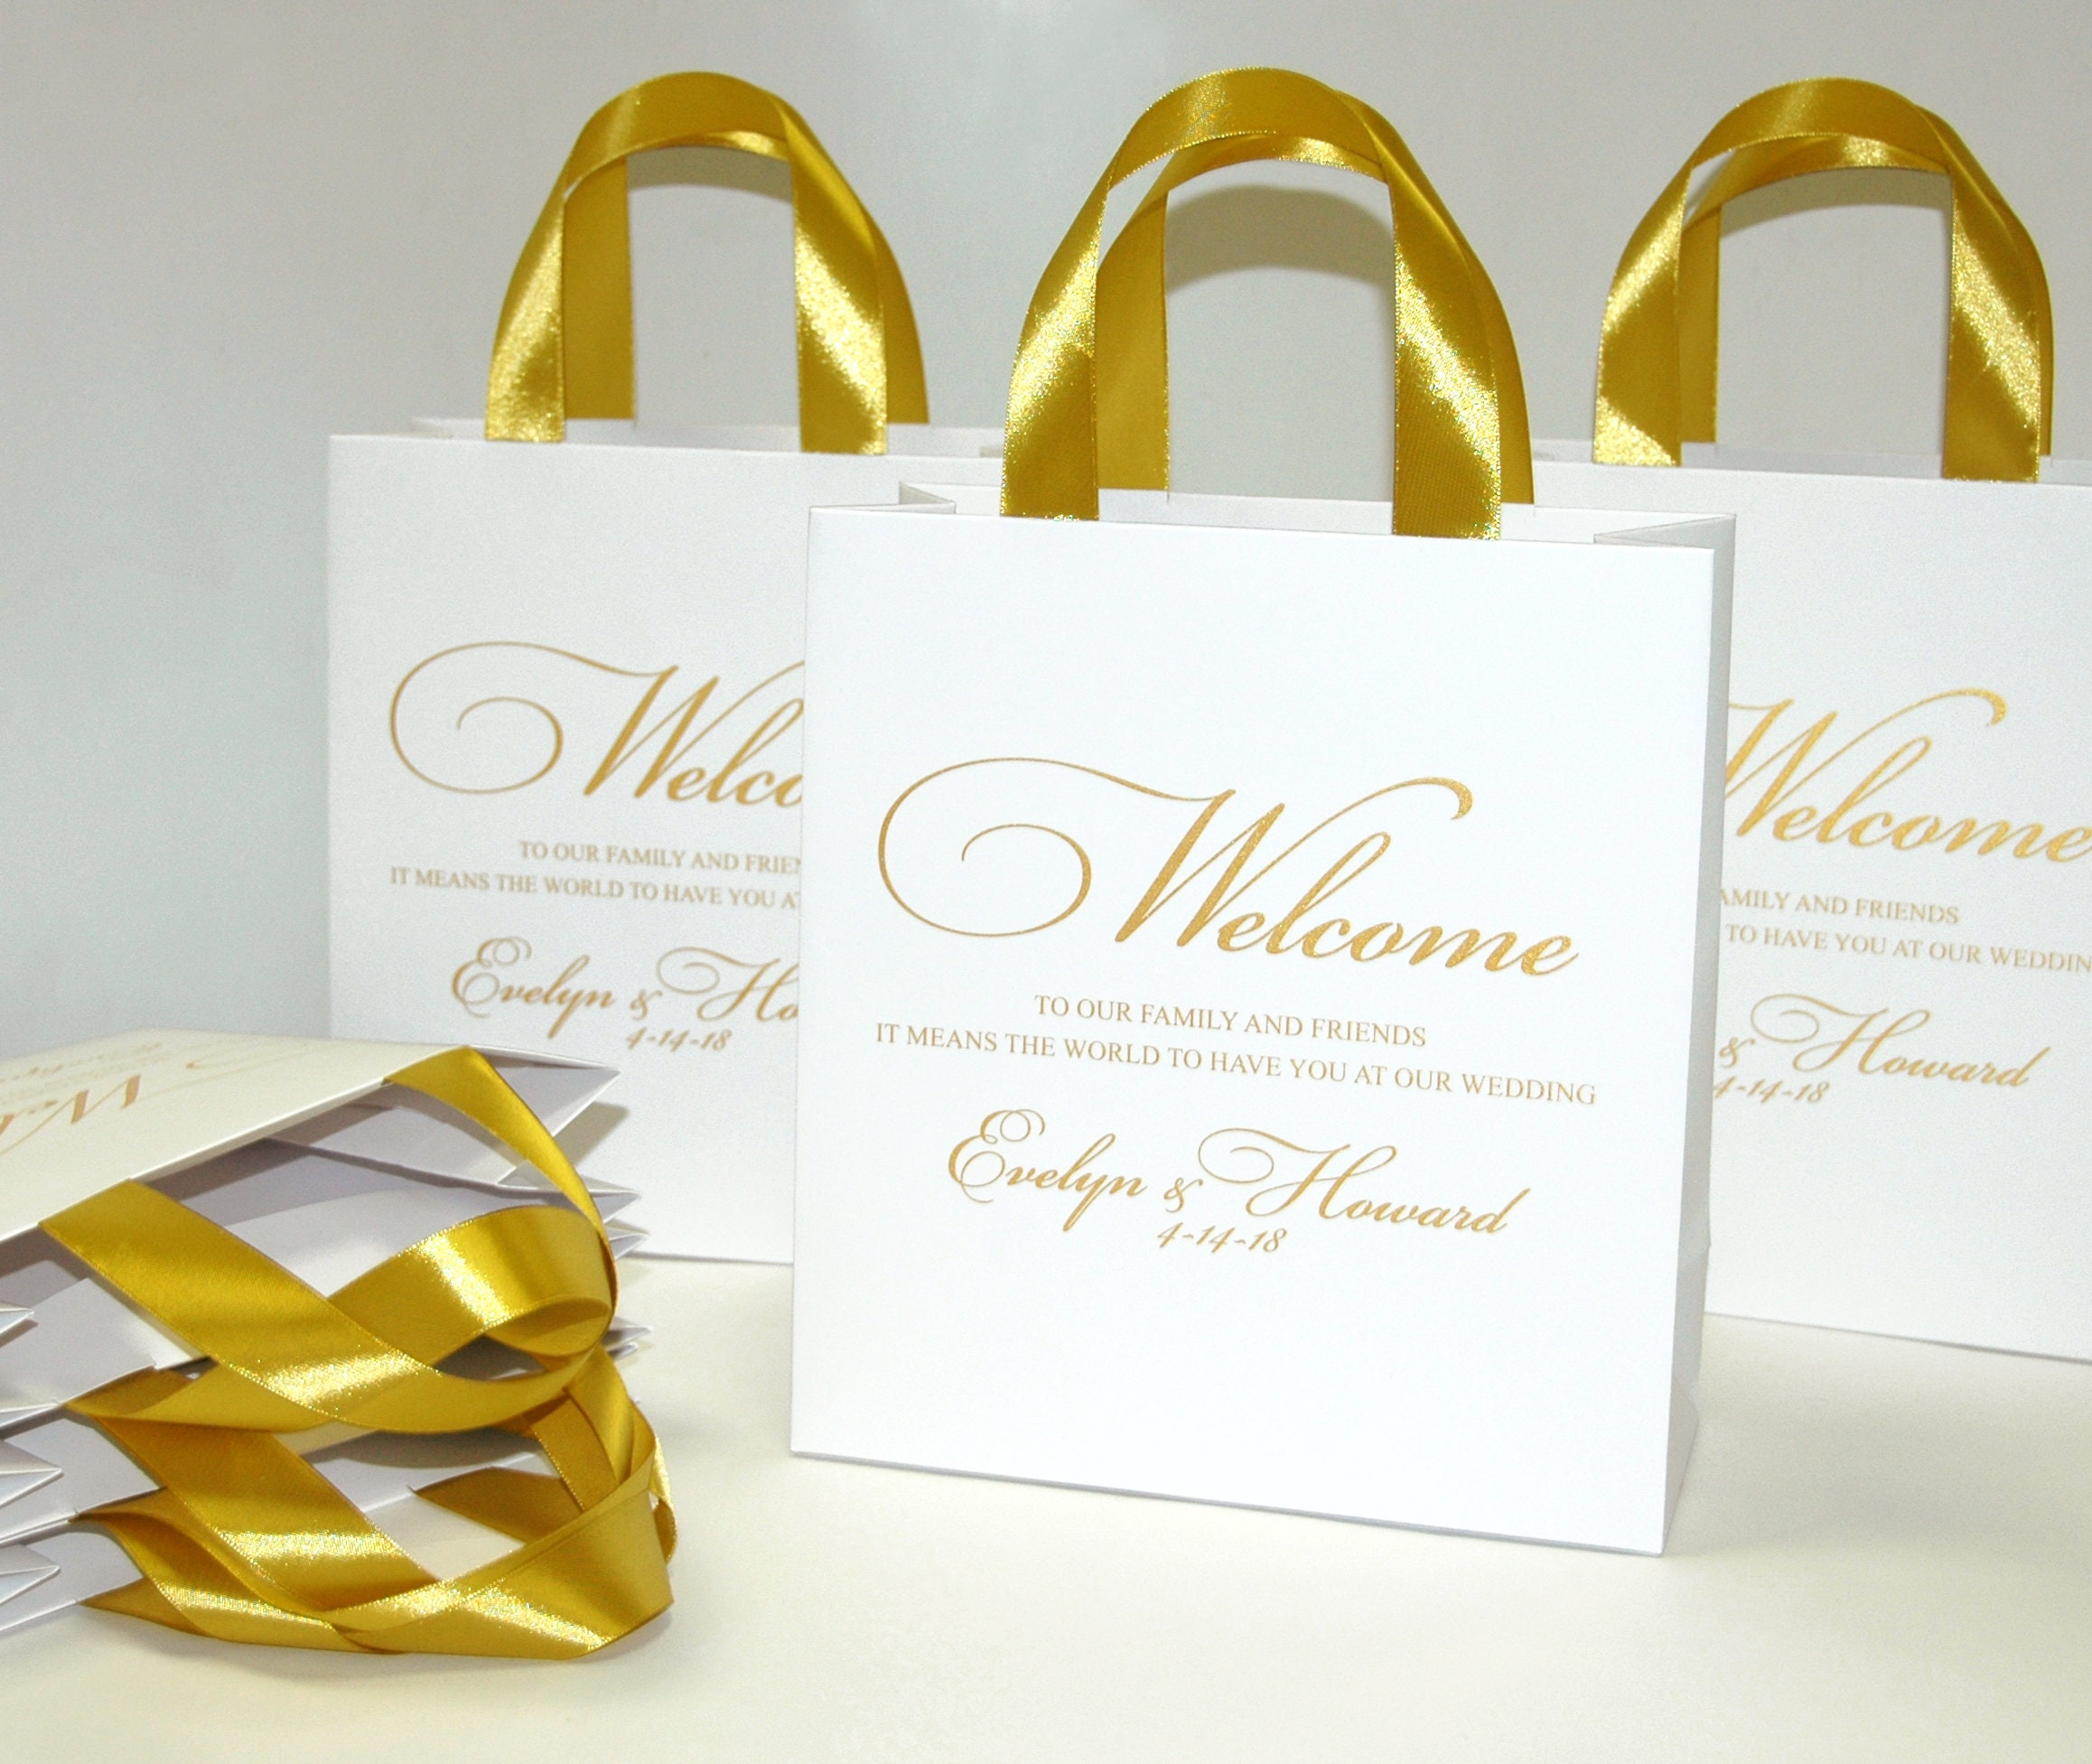 35 Gold Wedding Welcome Bags with satin ribbon handles and